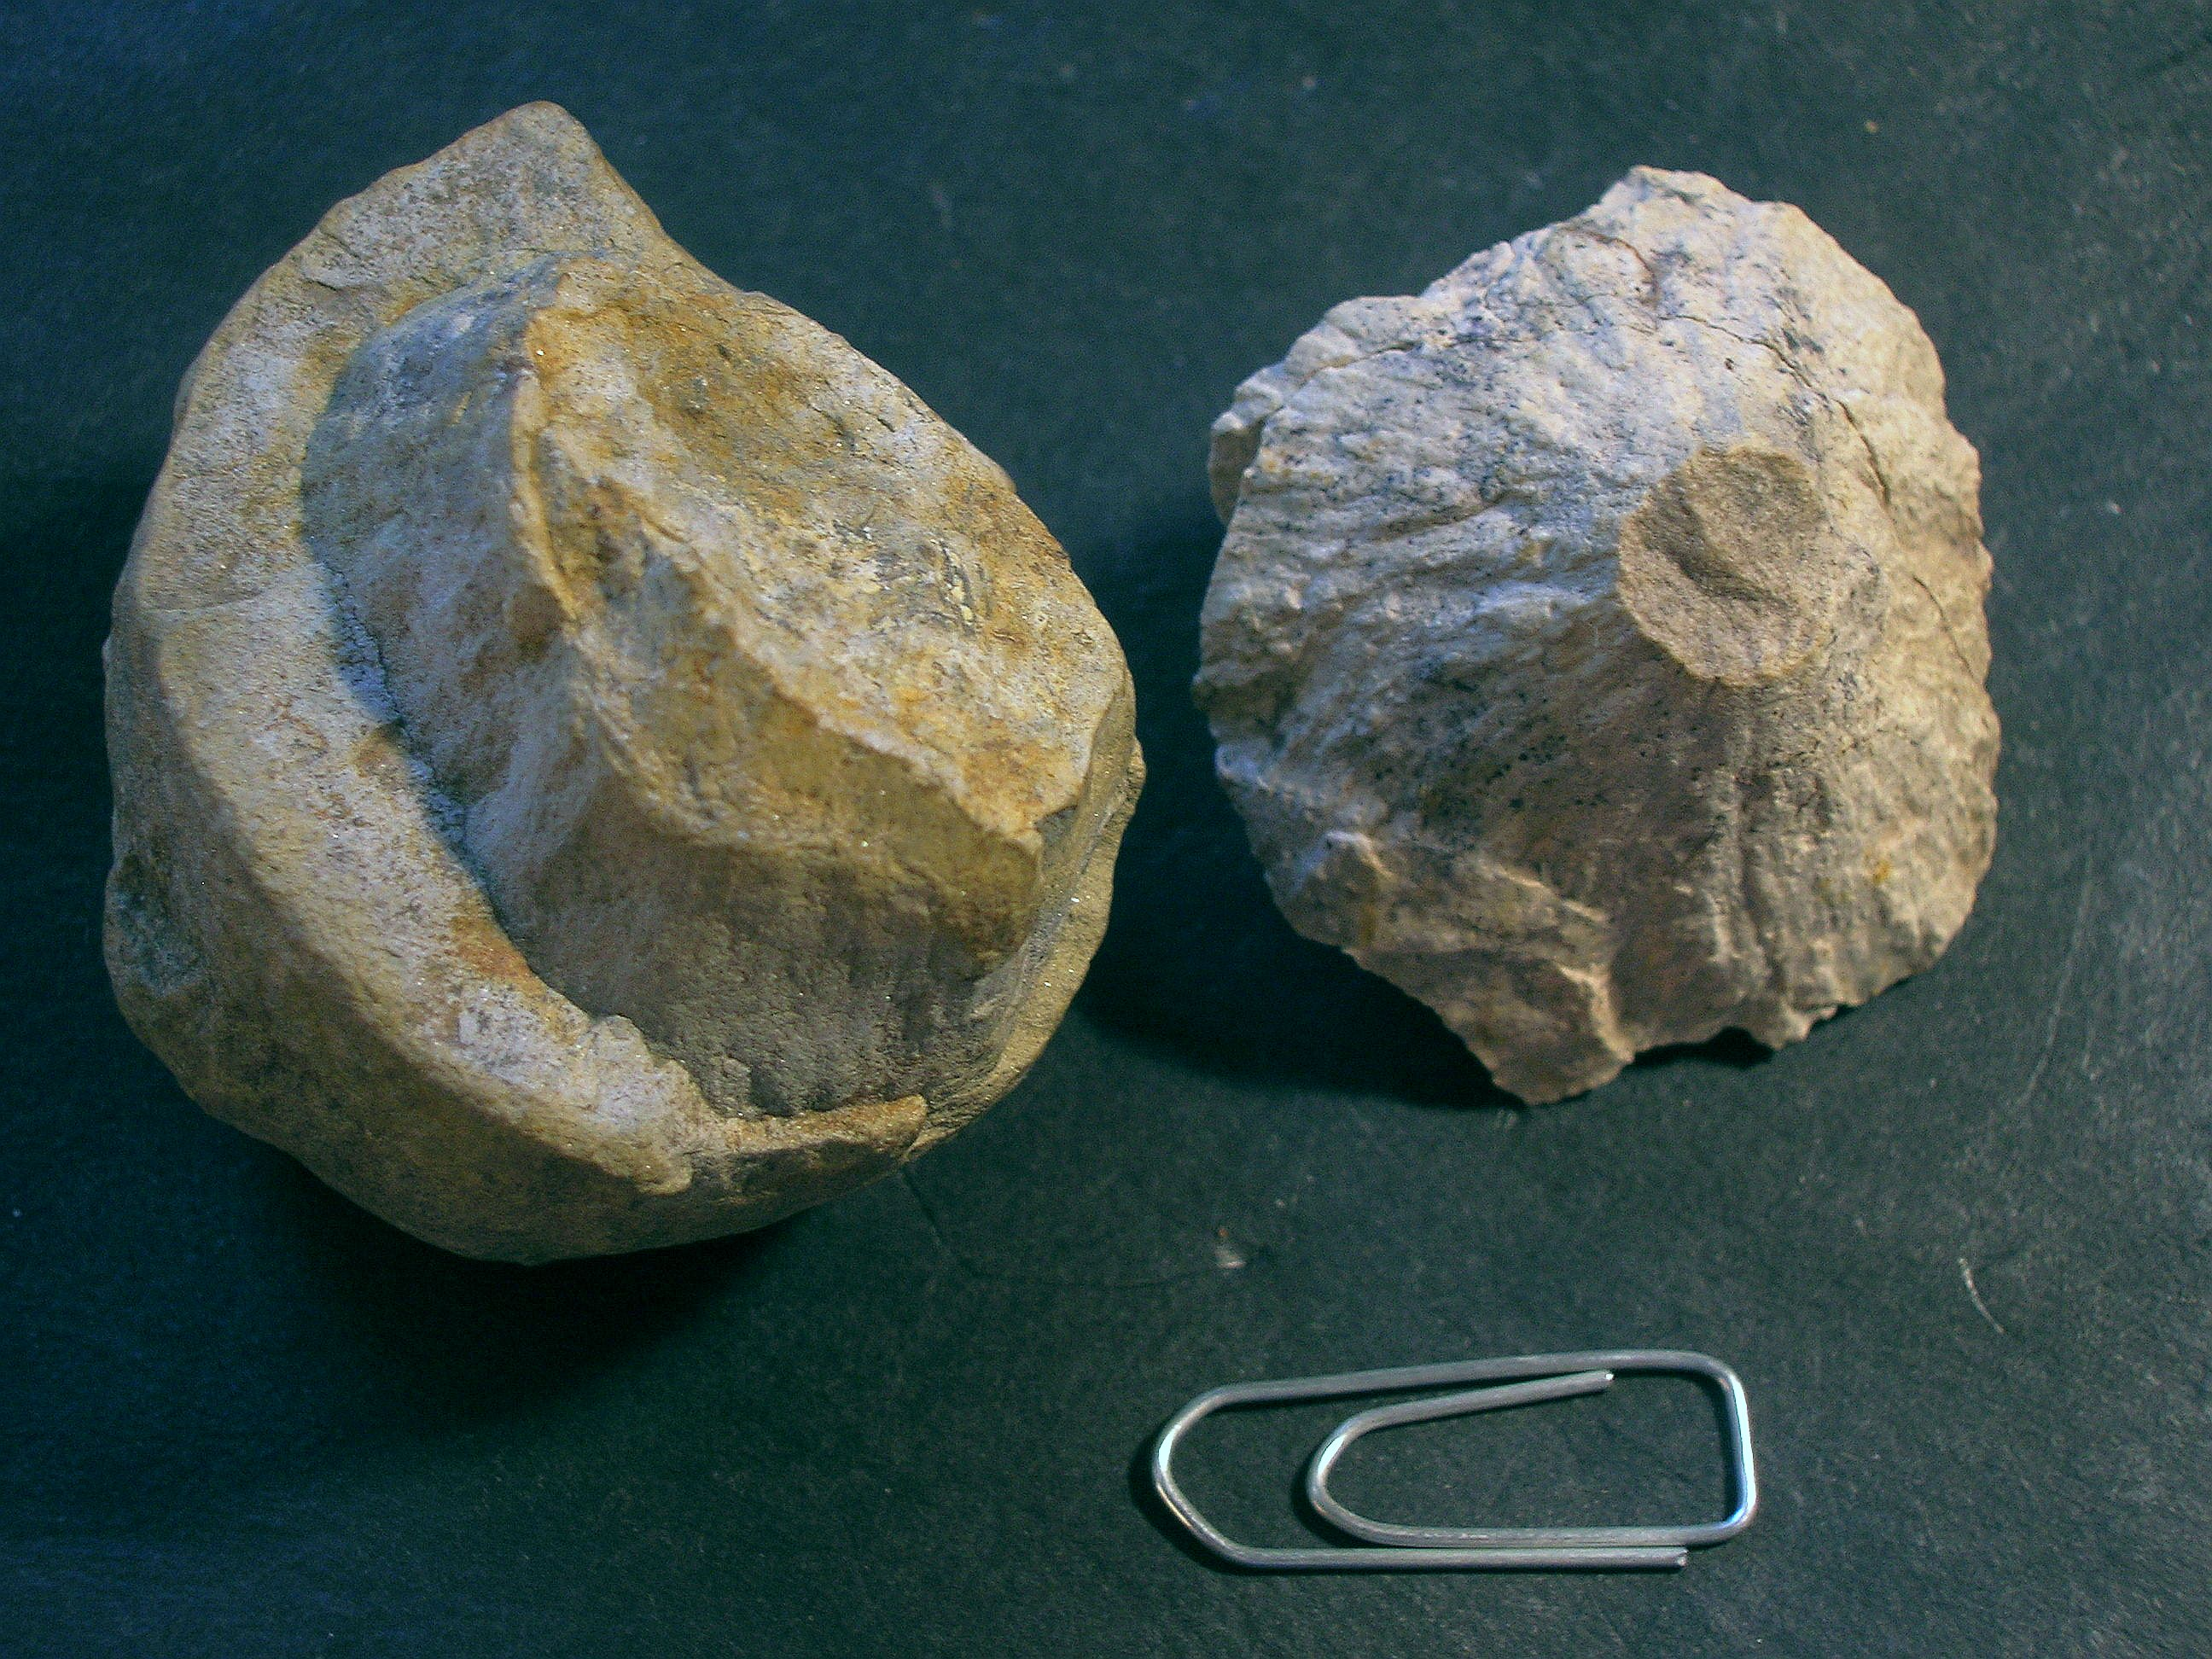 comparicon of shattercones Crooked Creek meteorite crater and Lake Tuettensee meteorite crater Chiemgau impact